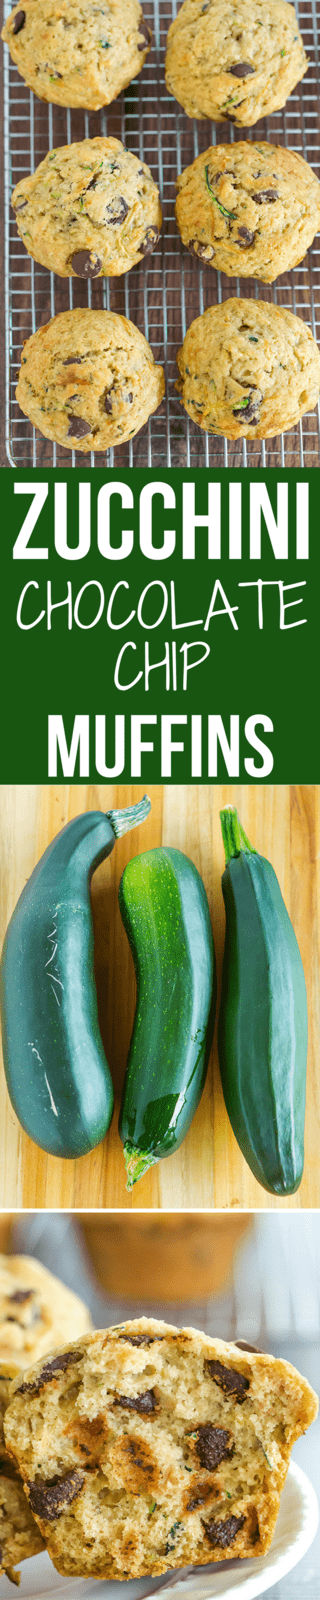 Zucchini-Chocolate Chip Muffins - A super quick and easy recipe, insanely moist, and a great way to use up the late summer zucchini bounty!